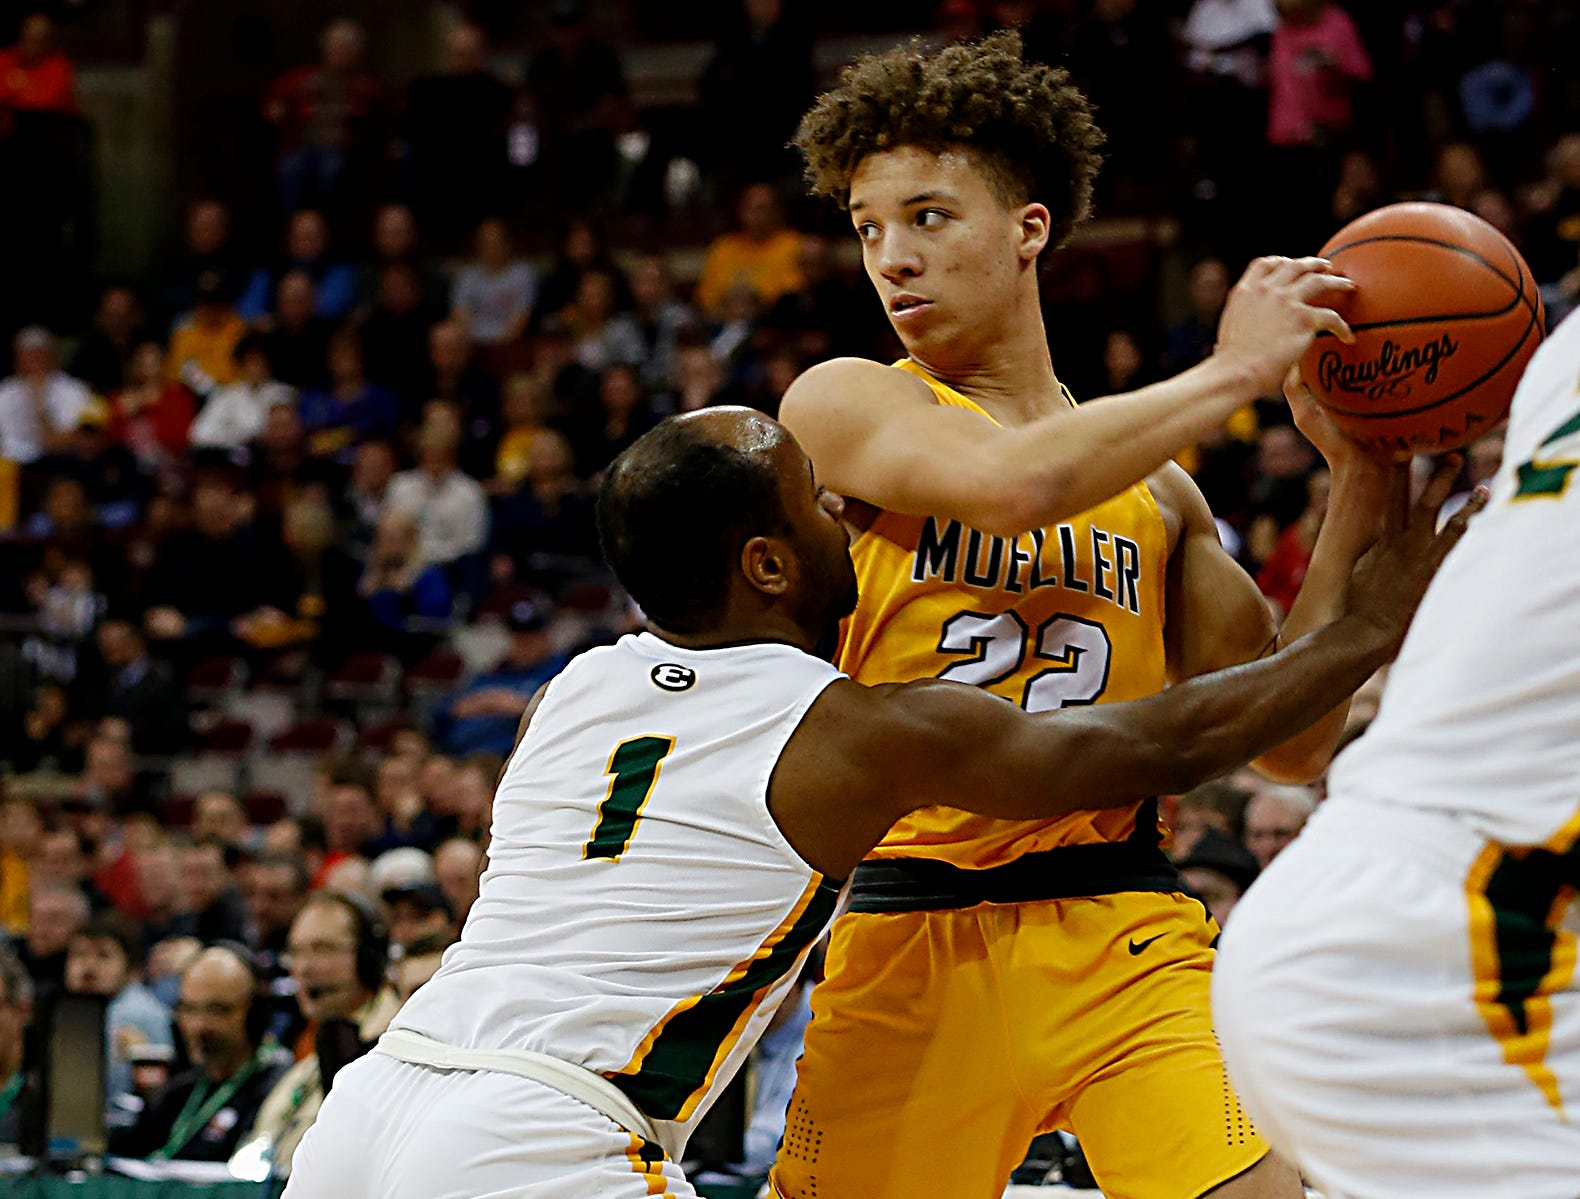 Moeller forward Max Land is pressured by St. Edward guard Demetrius Terry during their Division I semifinal at the Schottenstein Center in Columbus Friday, March 22, 2019.